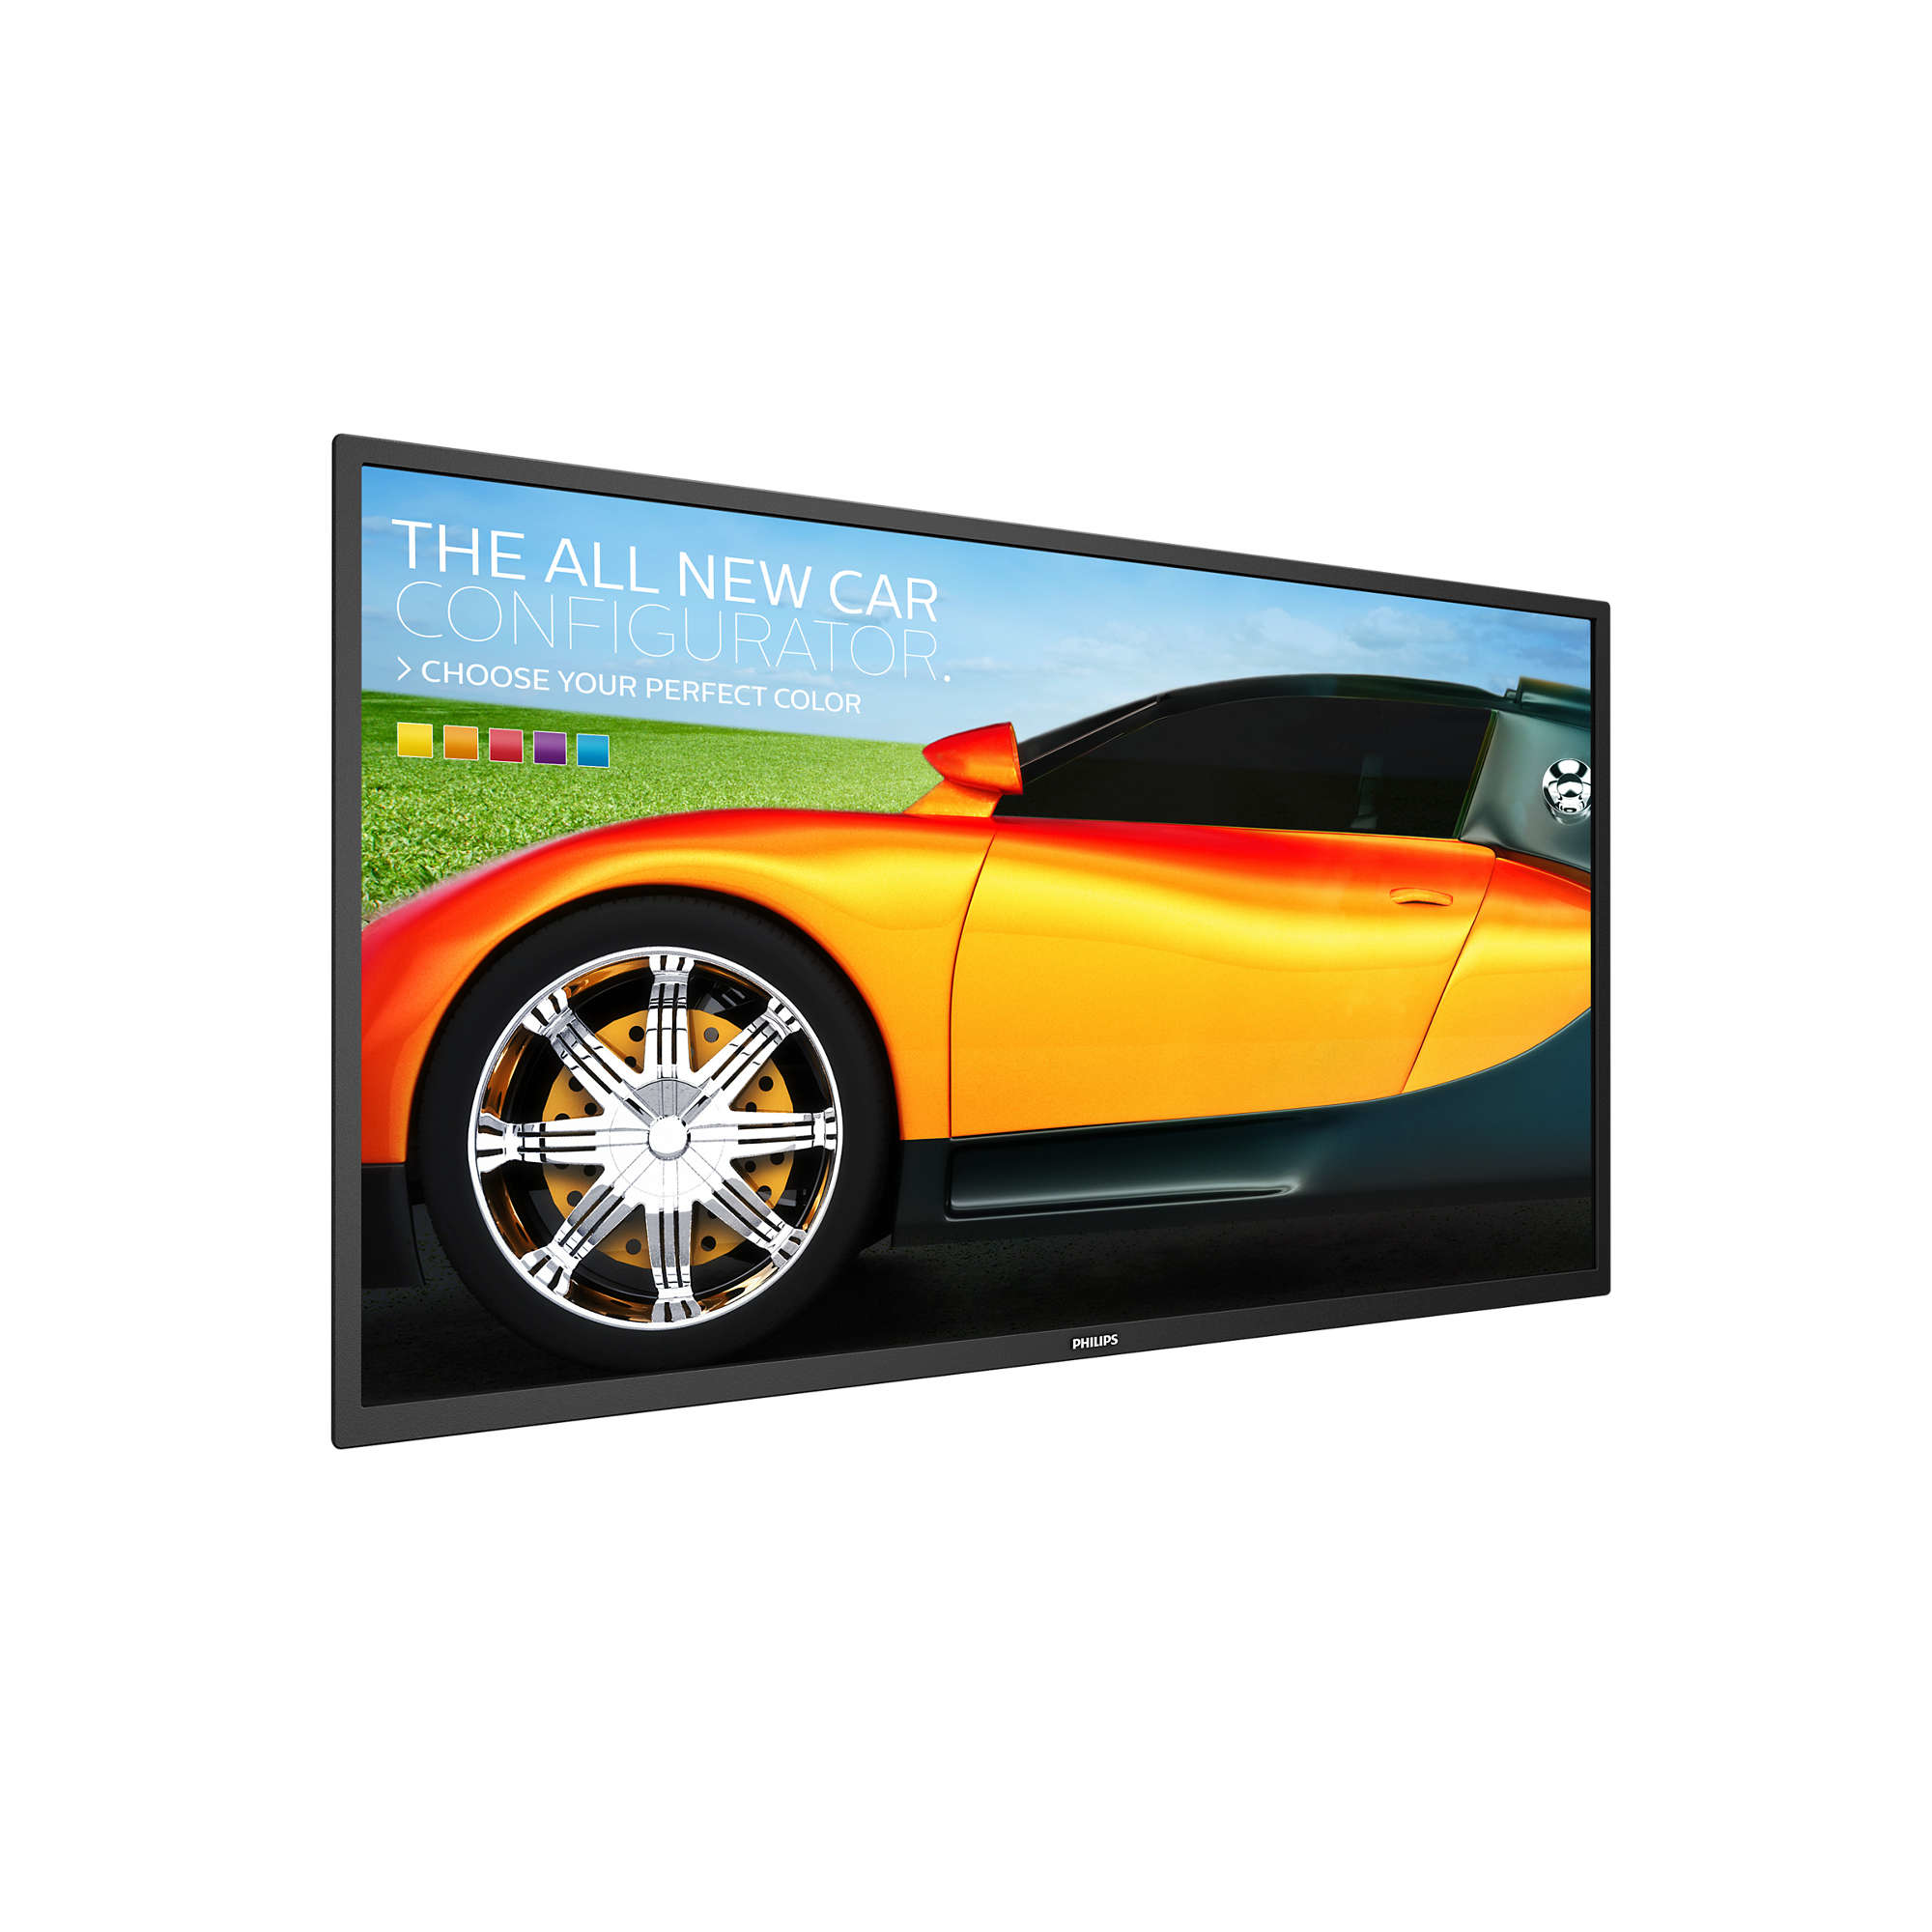 PHILIPS SIGNAGE SOLUTIONS BDL3230QL/00 DIGITAL FLAT PANEL 31.5